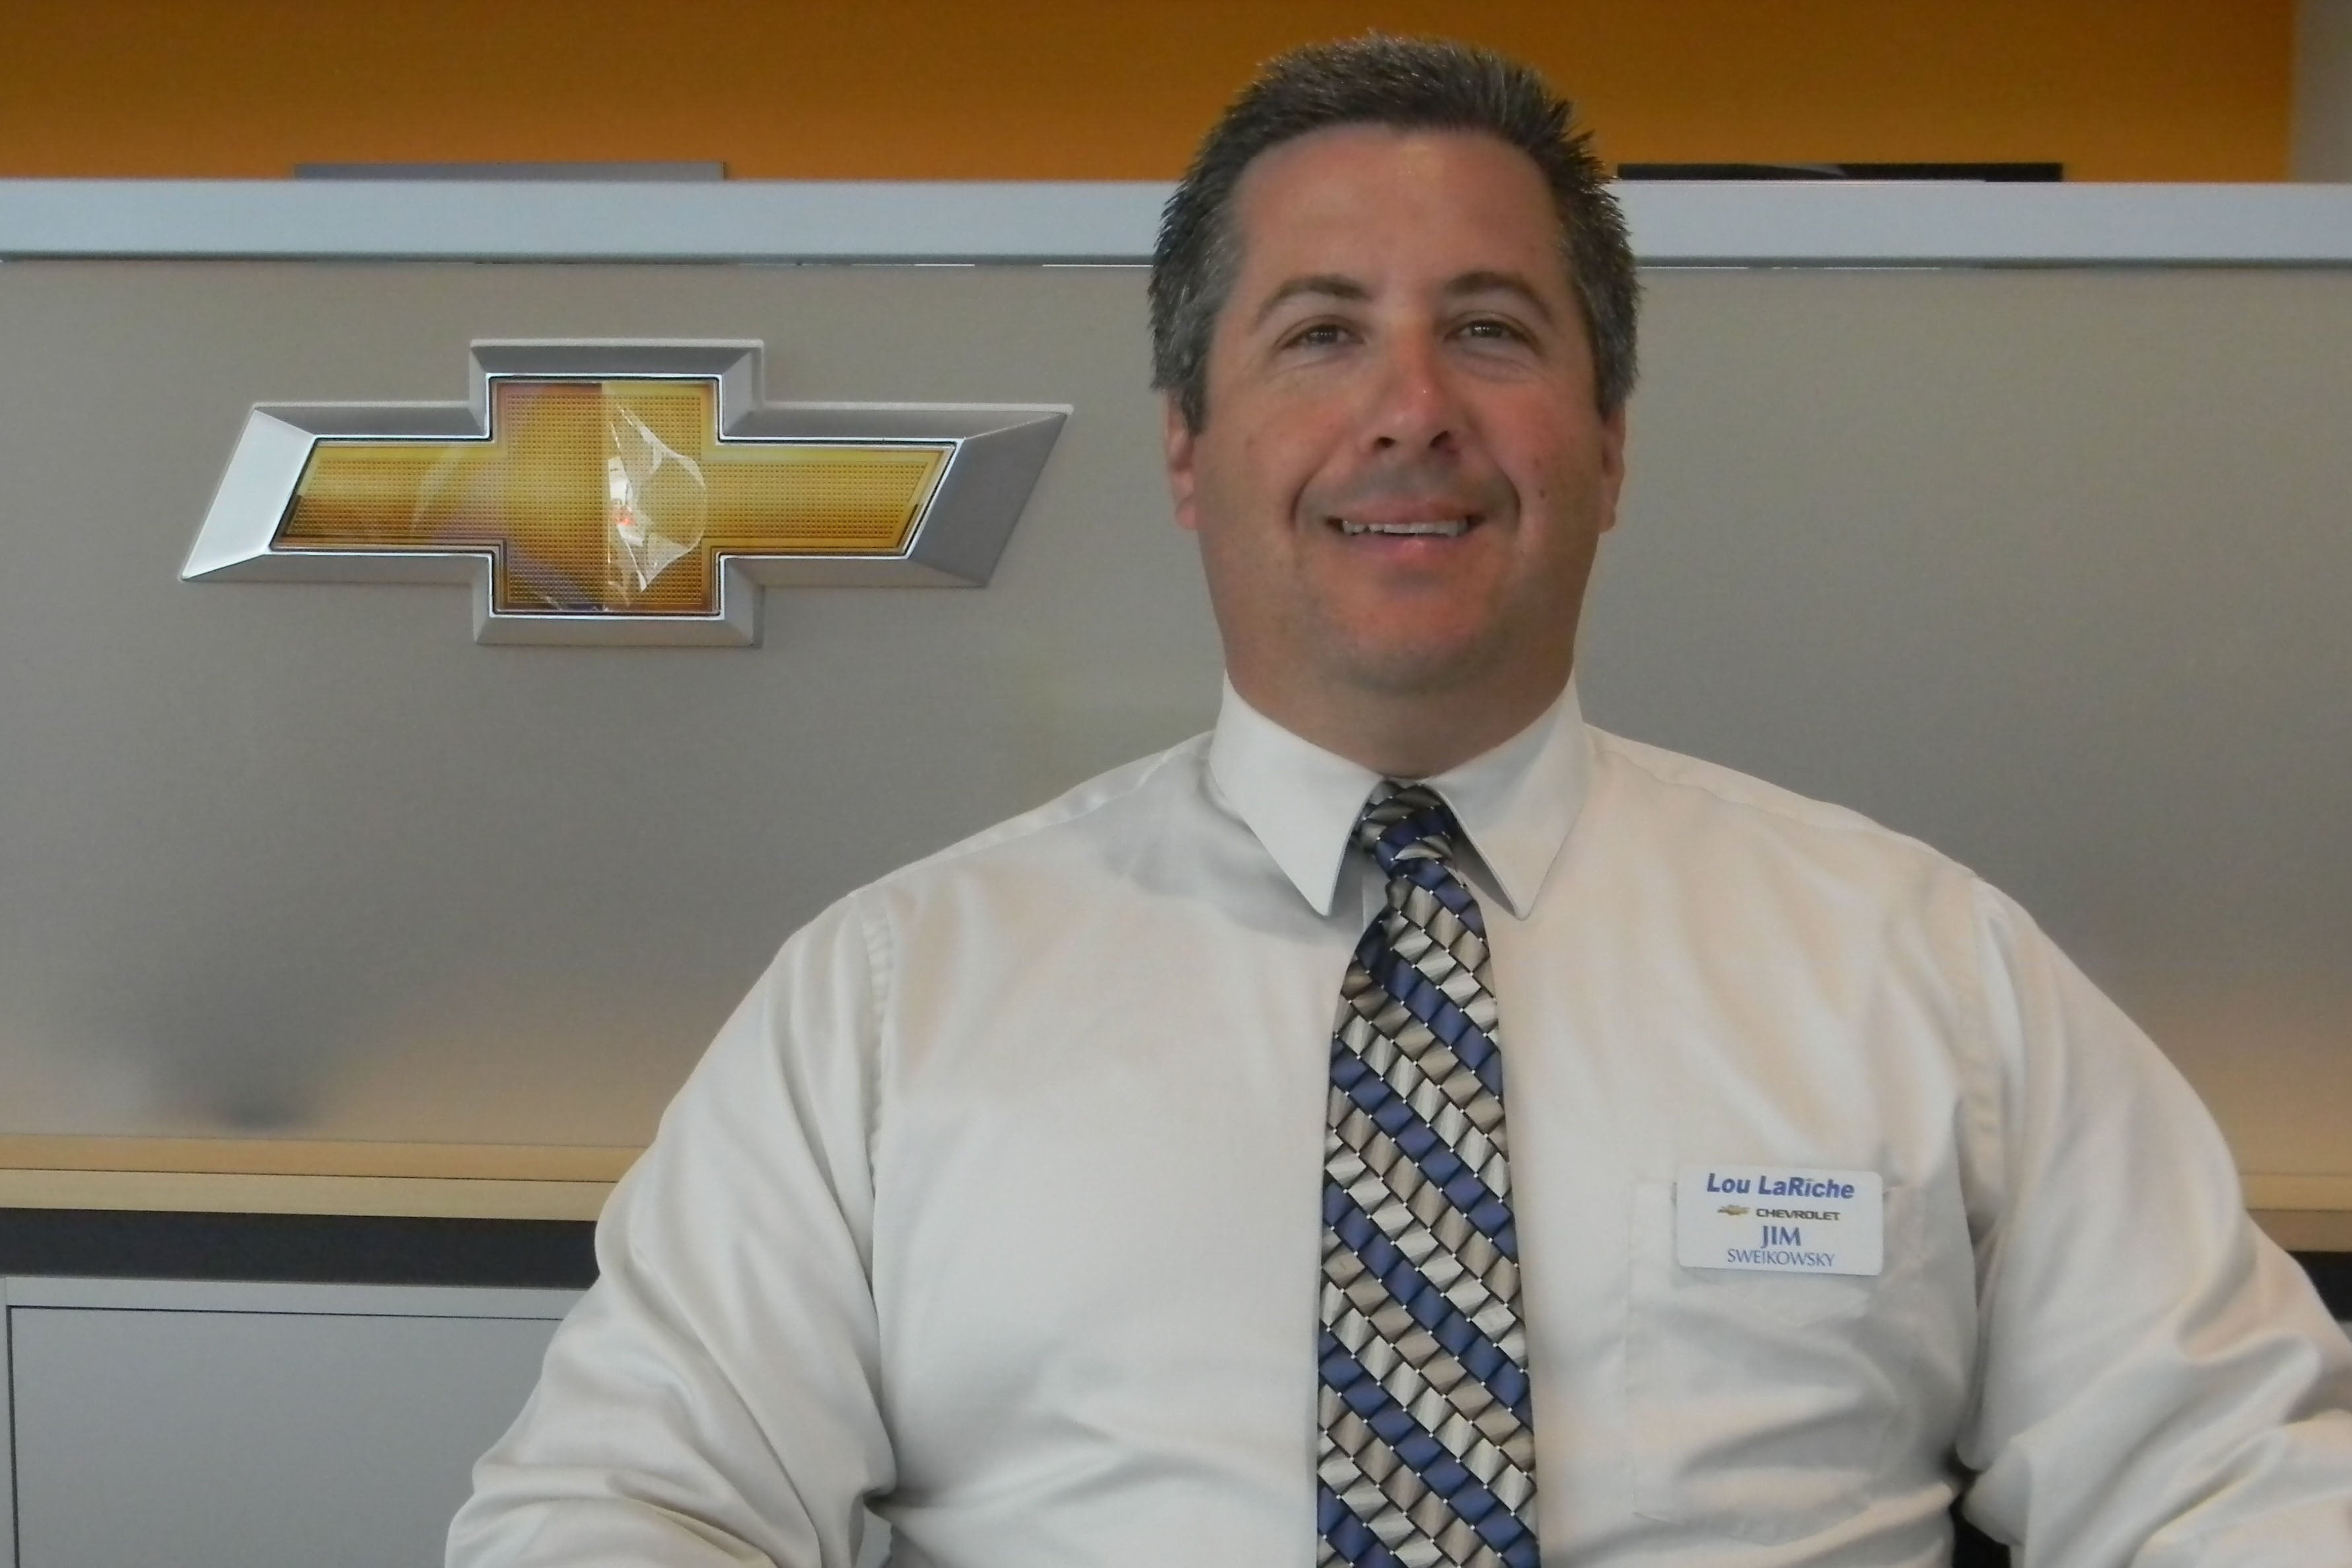 Lou Lariche Chevrolet Staff Plymouth Chevrolet Dealer In Plymouth Mi New And Used Chevrolet Dealership Livonia Canton Northville Mi